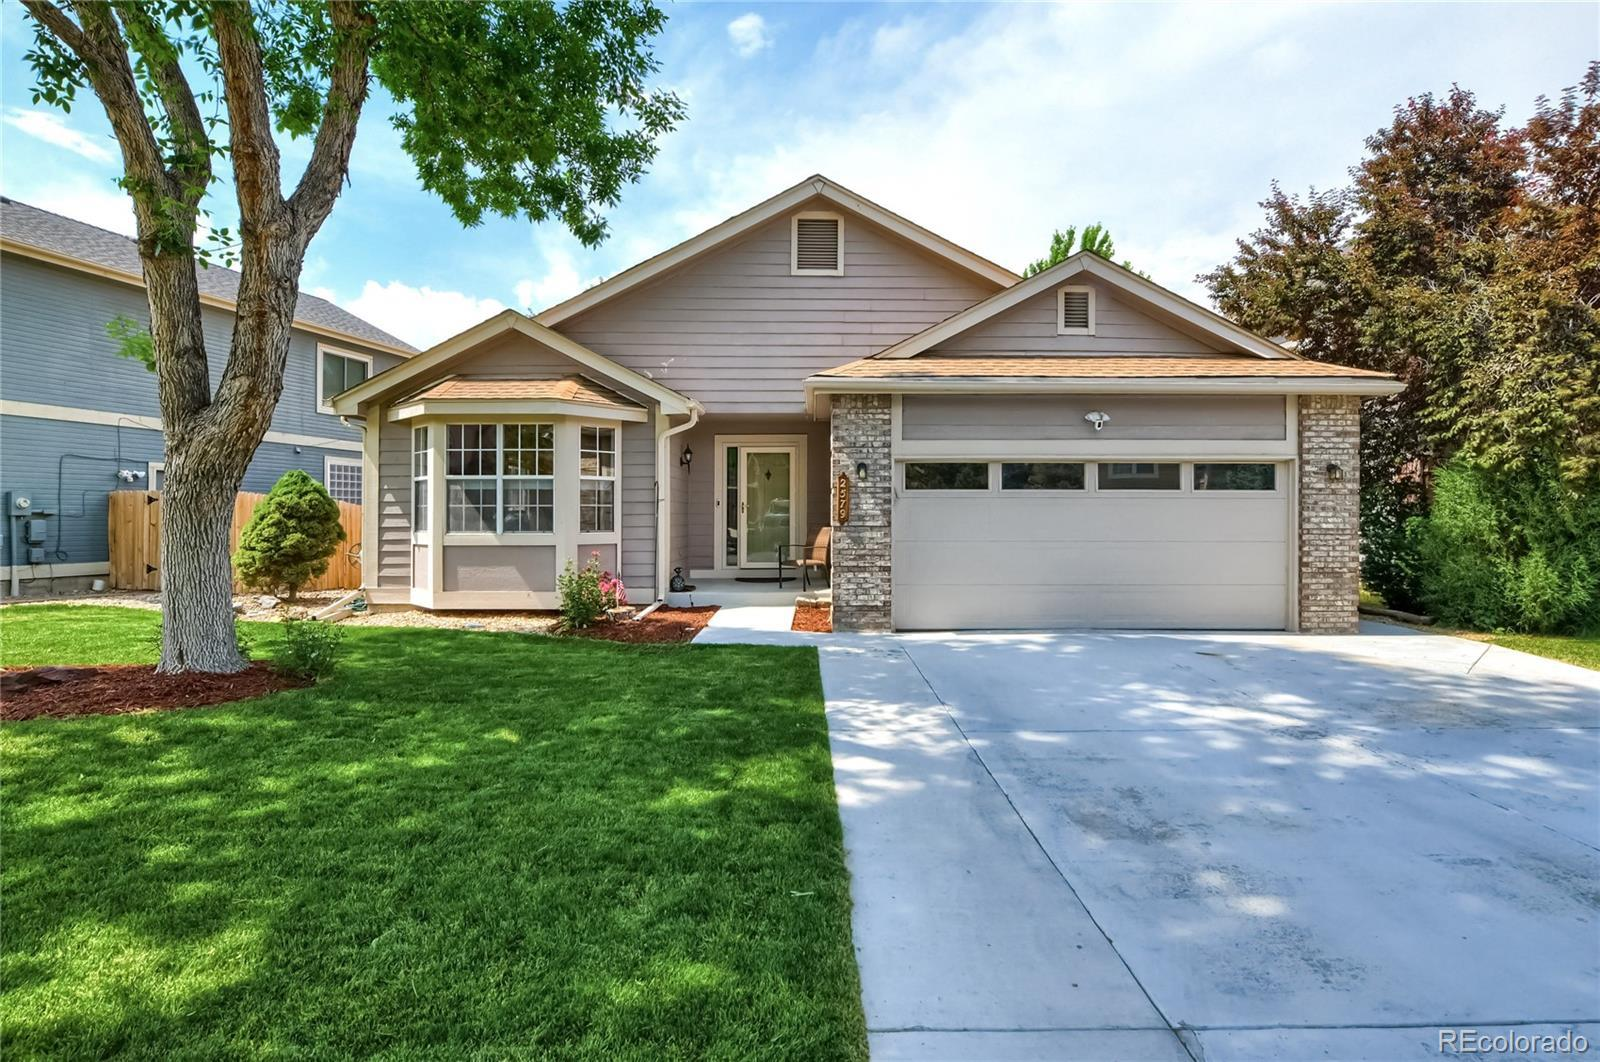 2579 W 109th Avenue, Westminster, CO 80234 - #: 1708665